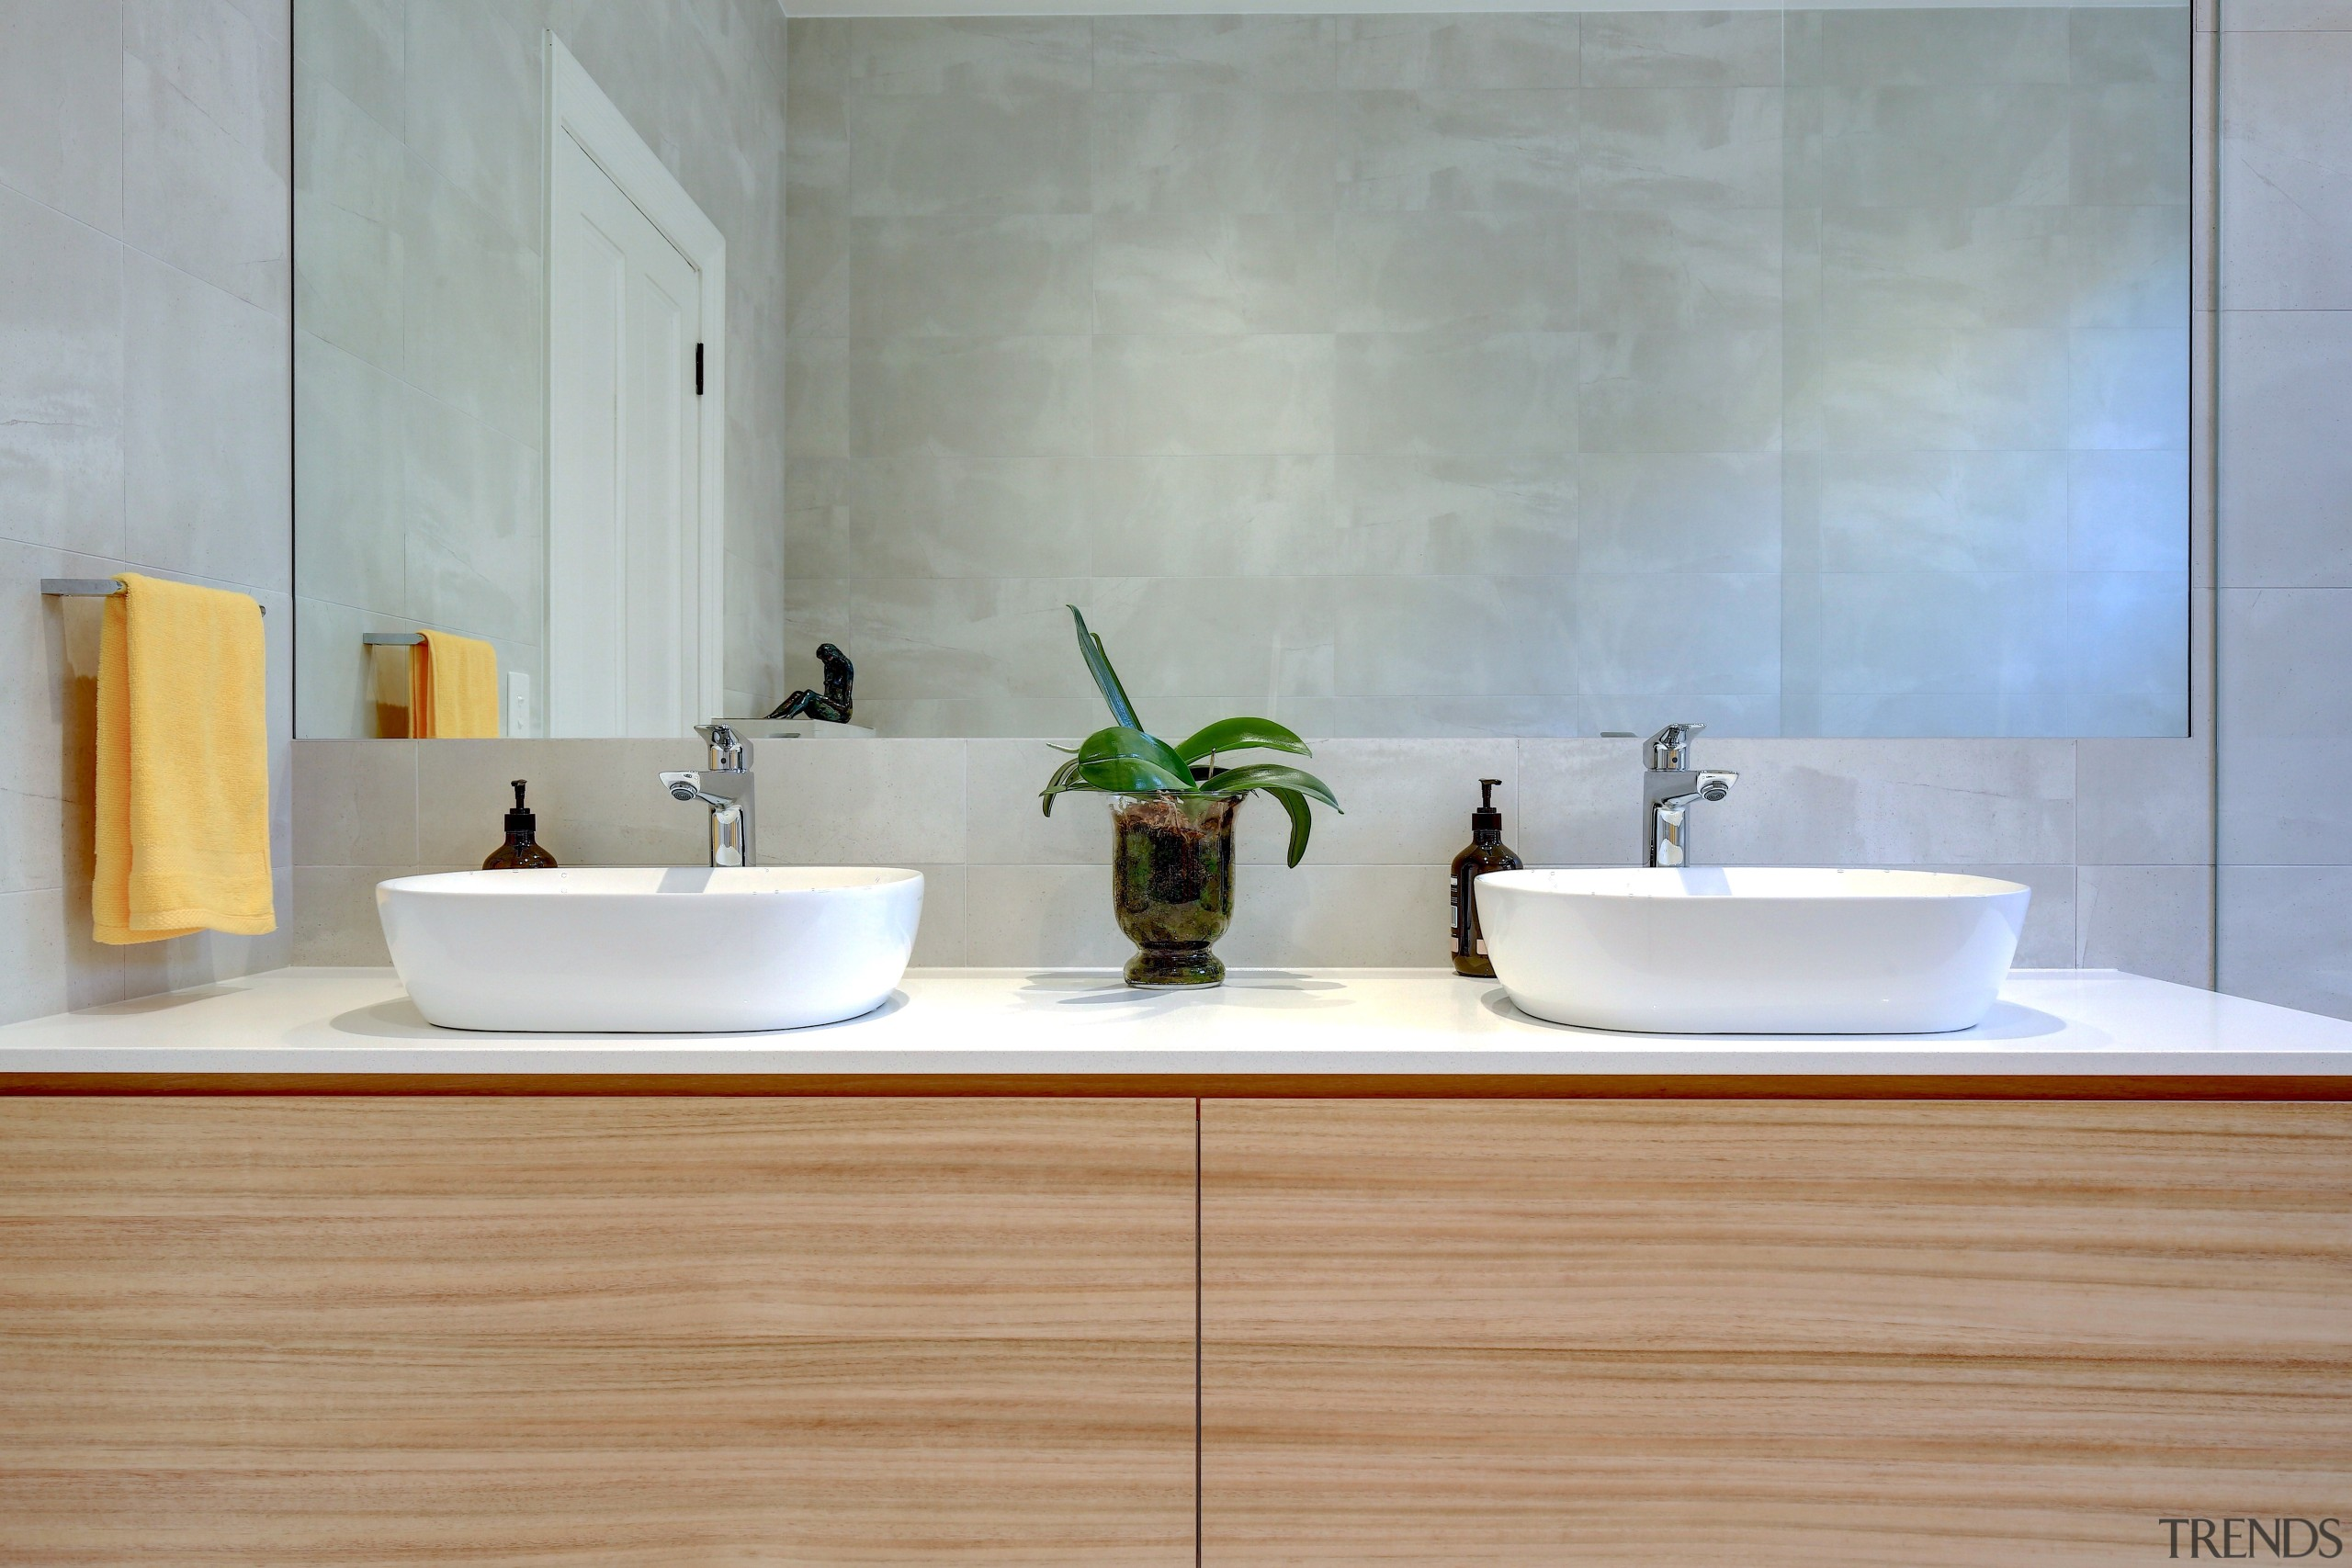 A large mirror was a key part of architecture, bathroom, bathroom sink, ceramic, countertop, floor, flooring, hardwood, interior design, marble, material property, plumbing fixture, property, room, sink, tap, tile, wall, wood, gray